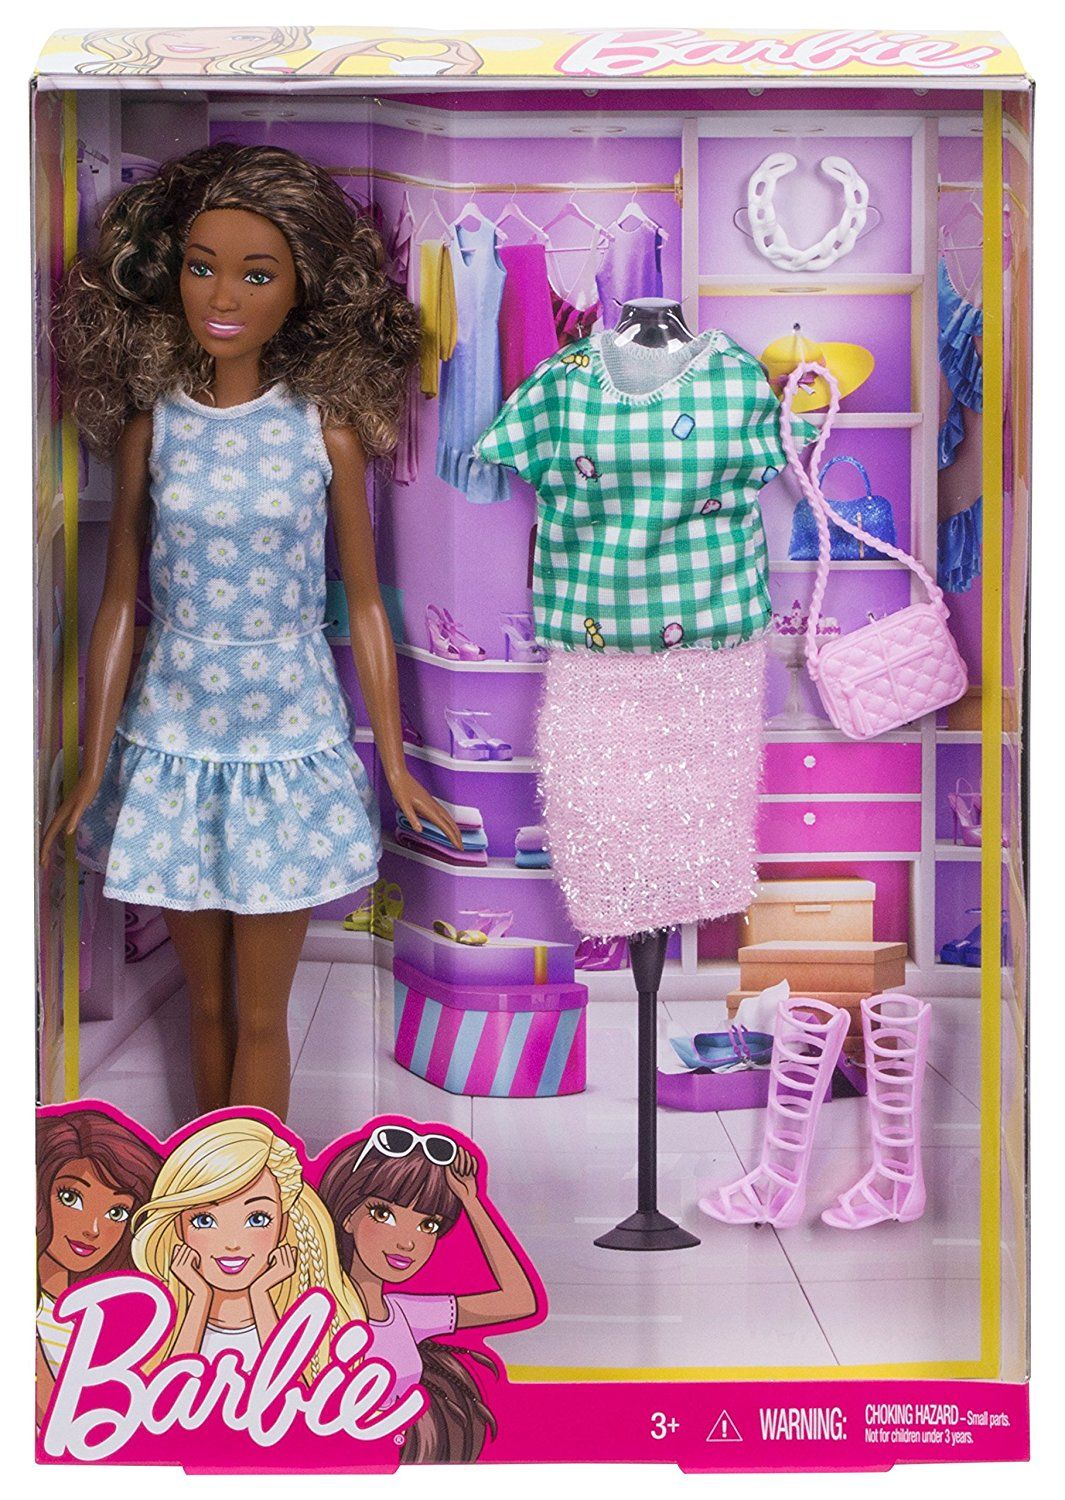 Doll Toys In Amazon Amazon Barbie Fashion Doll Toys Games Barbie 2015